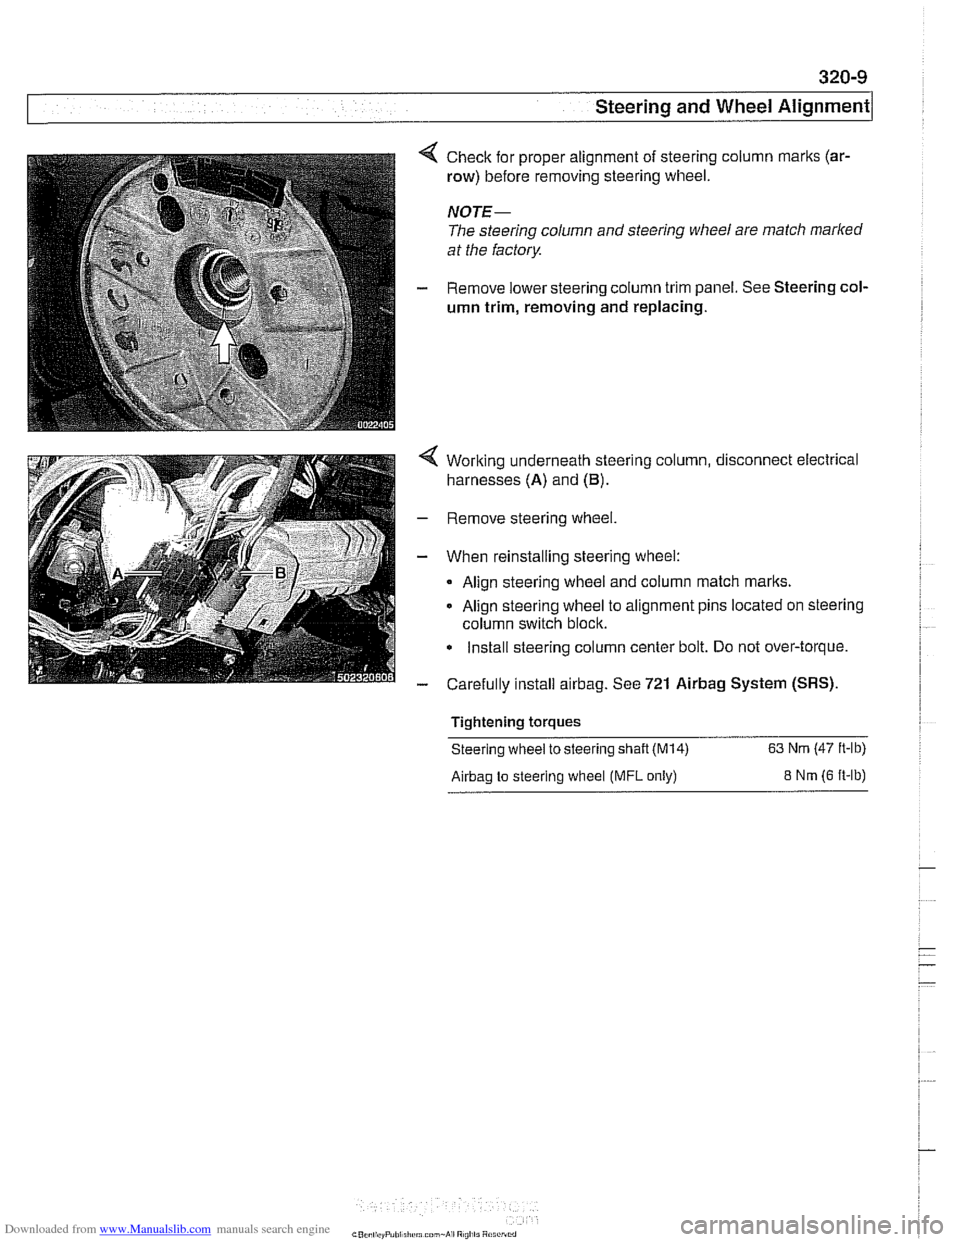 BMW 525i 1997 E39 Workshop Manual Downloaded from www.Manualslib.com manuals search engine  Check for proper  alignment  of steering column  marks (ar-  row)  before  removing  steering wheel.  NOTE-  The steering column  and steering